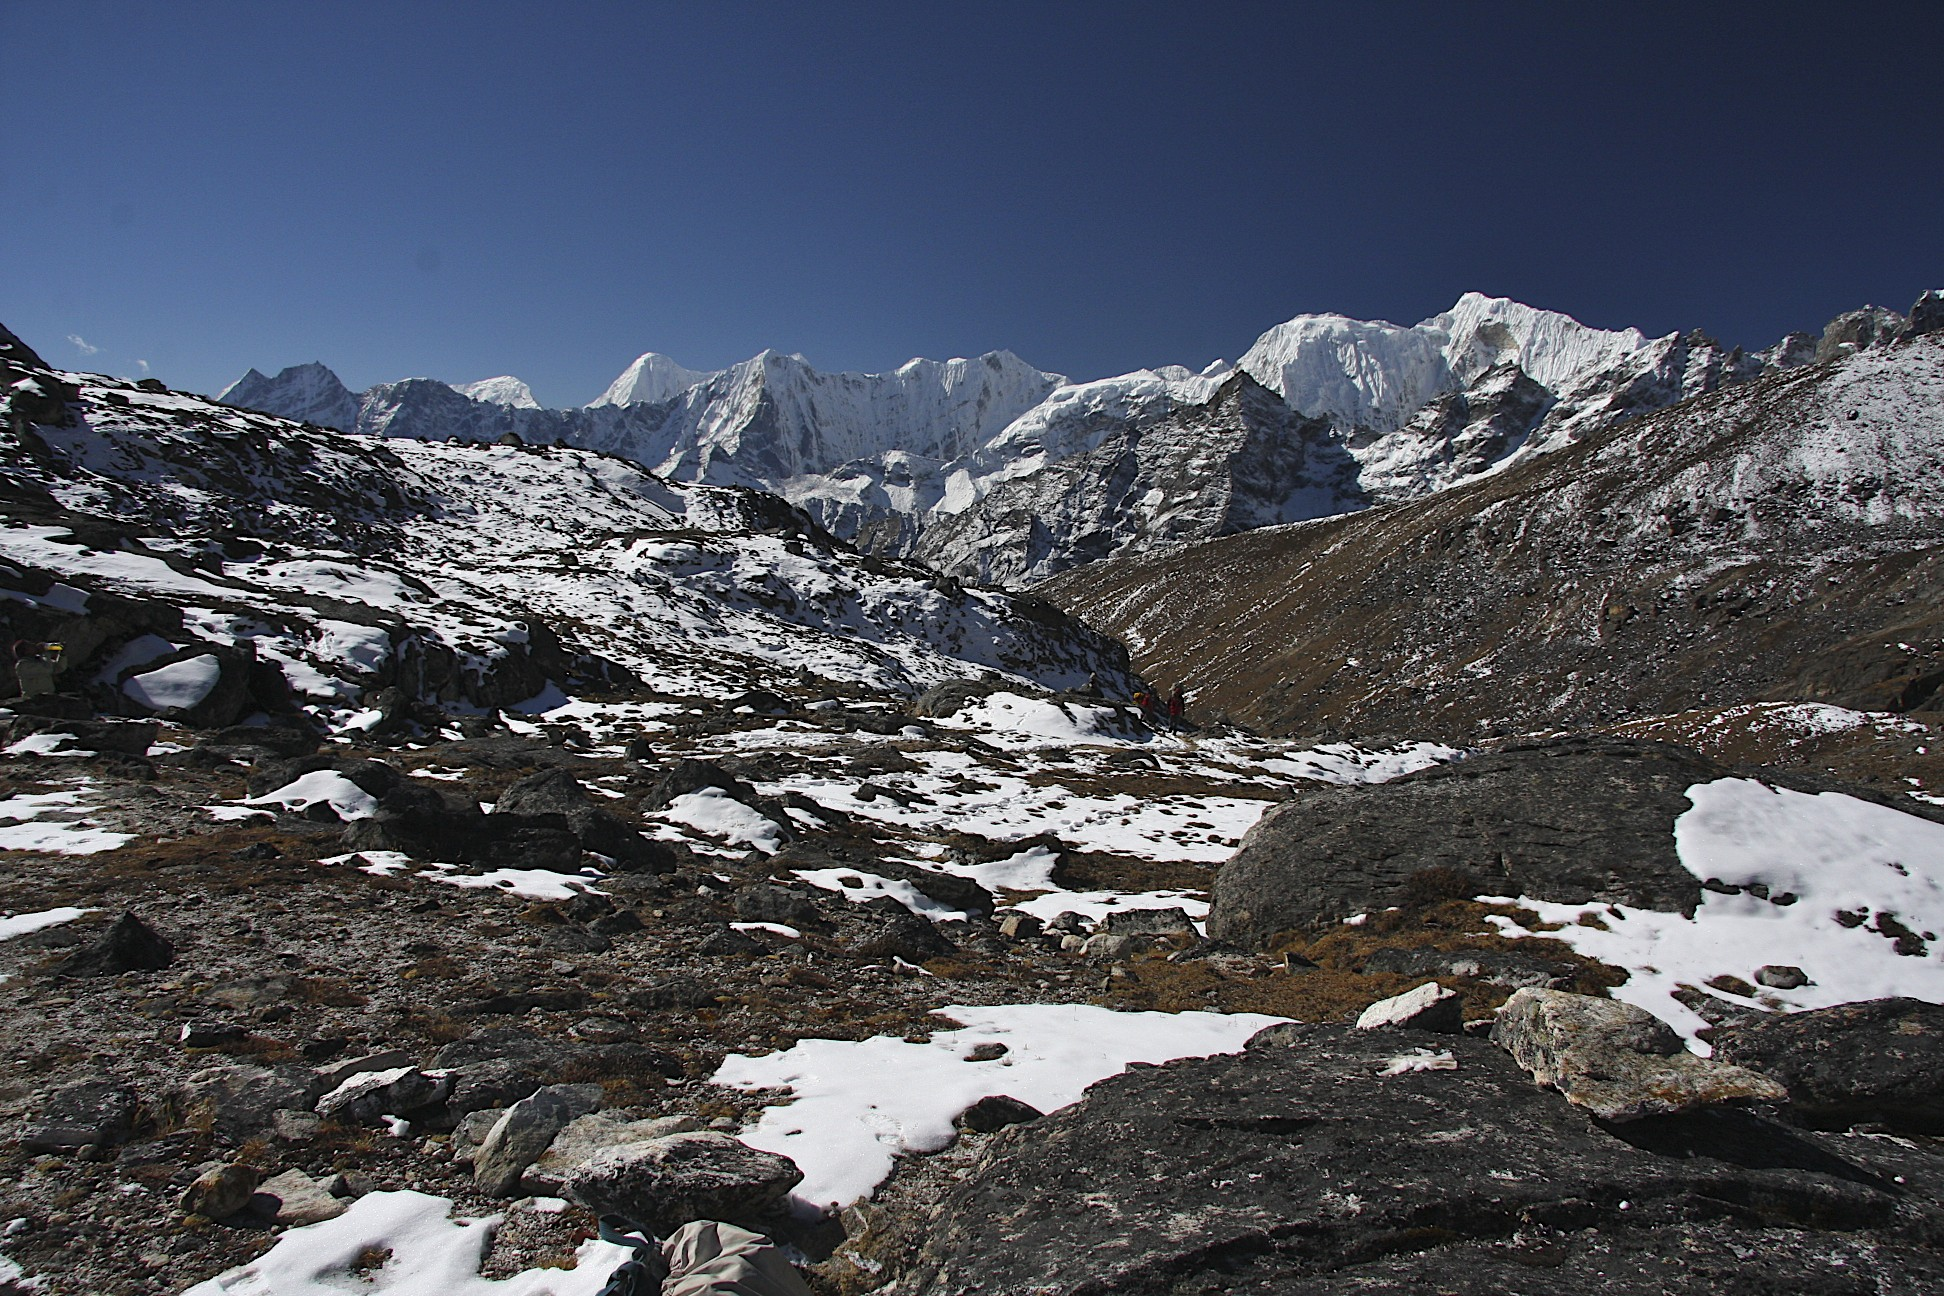 Ascending the Renjo La Pass from the west.